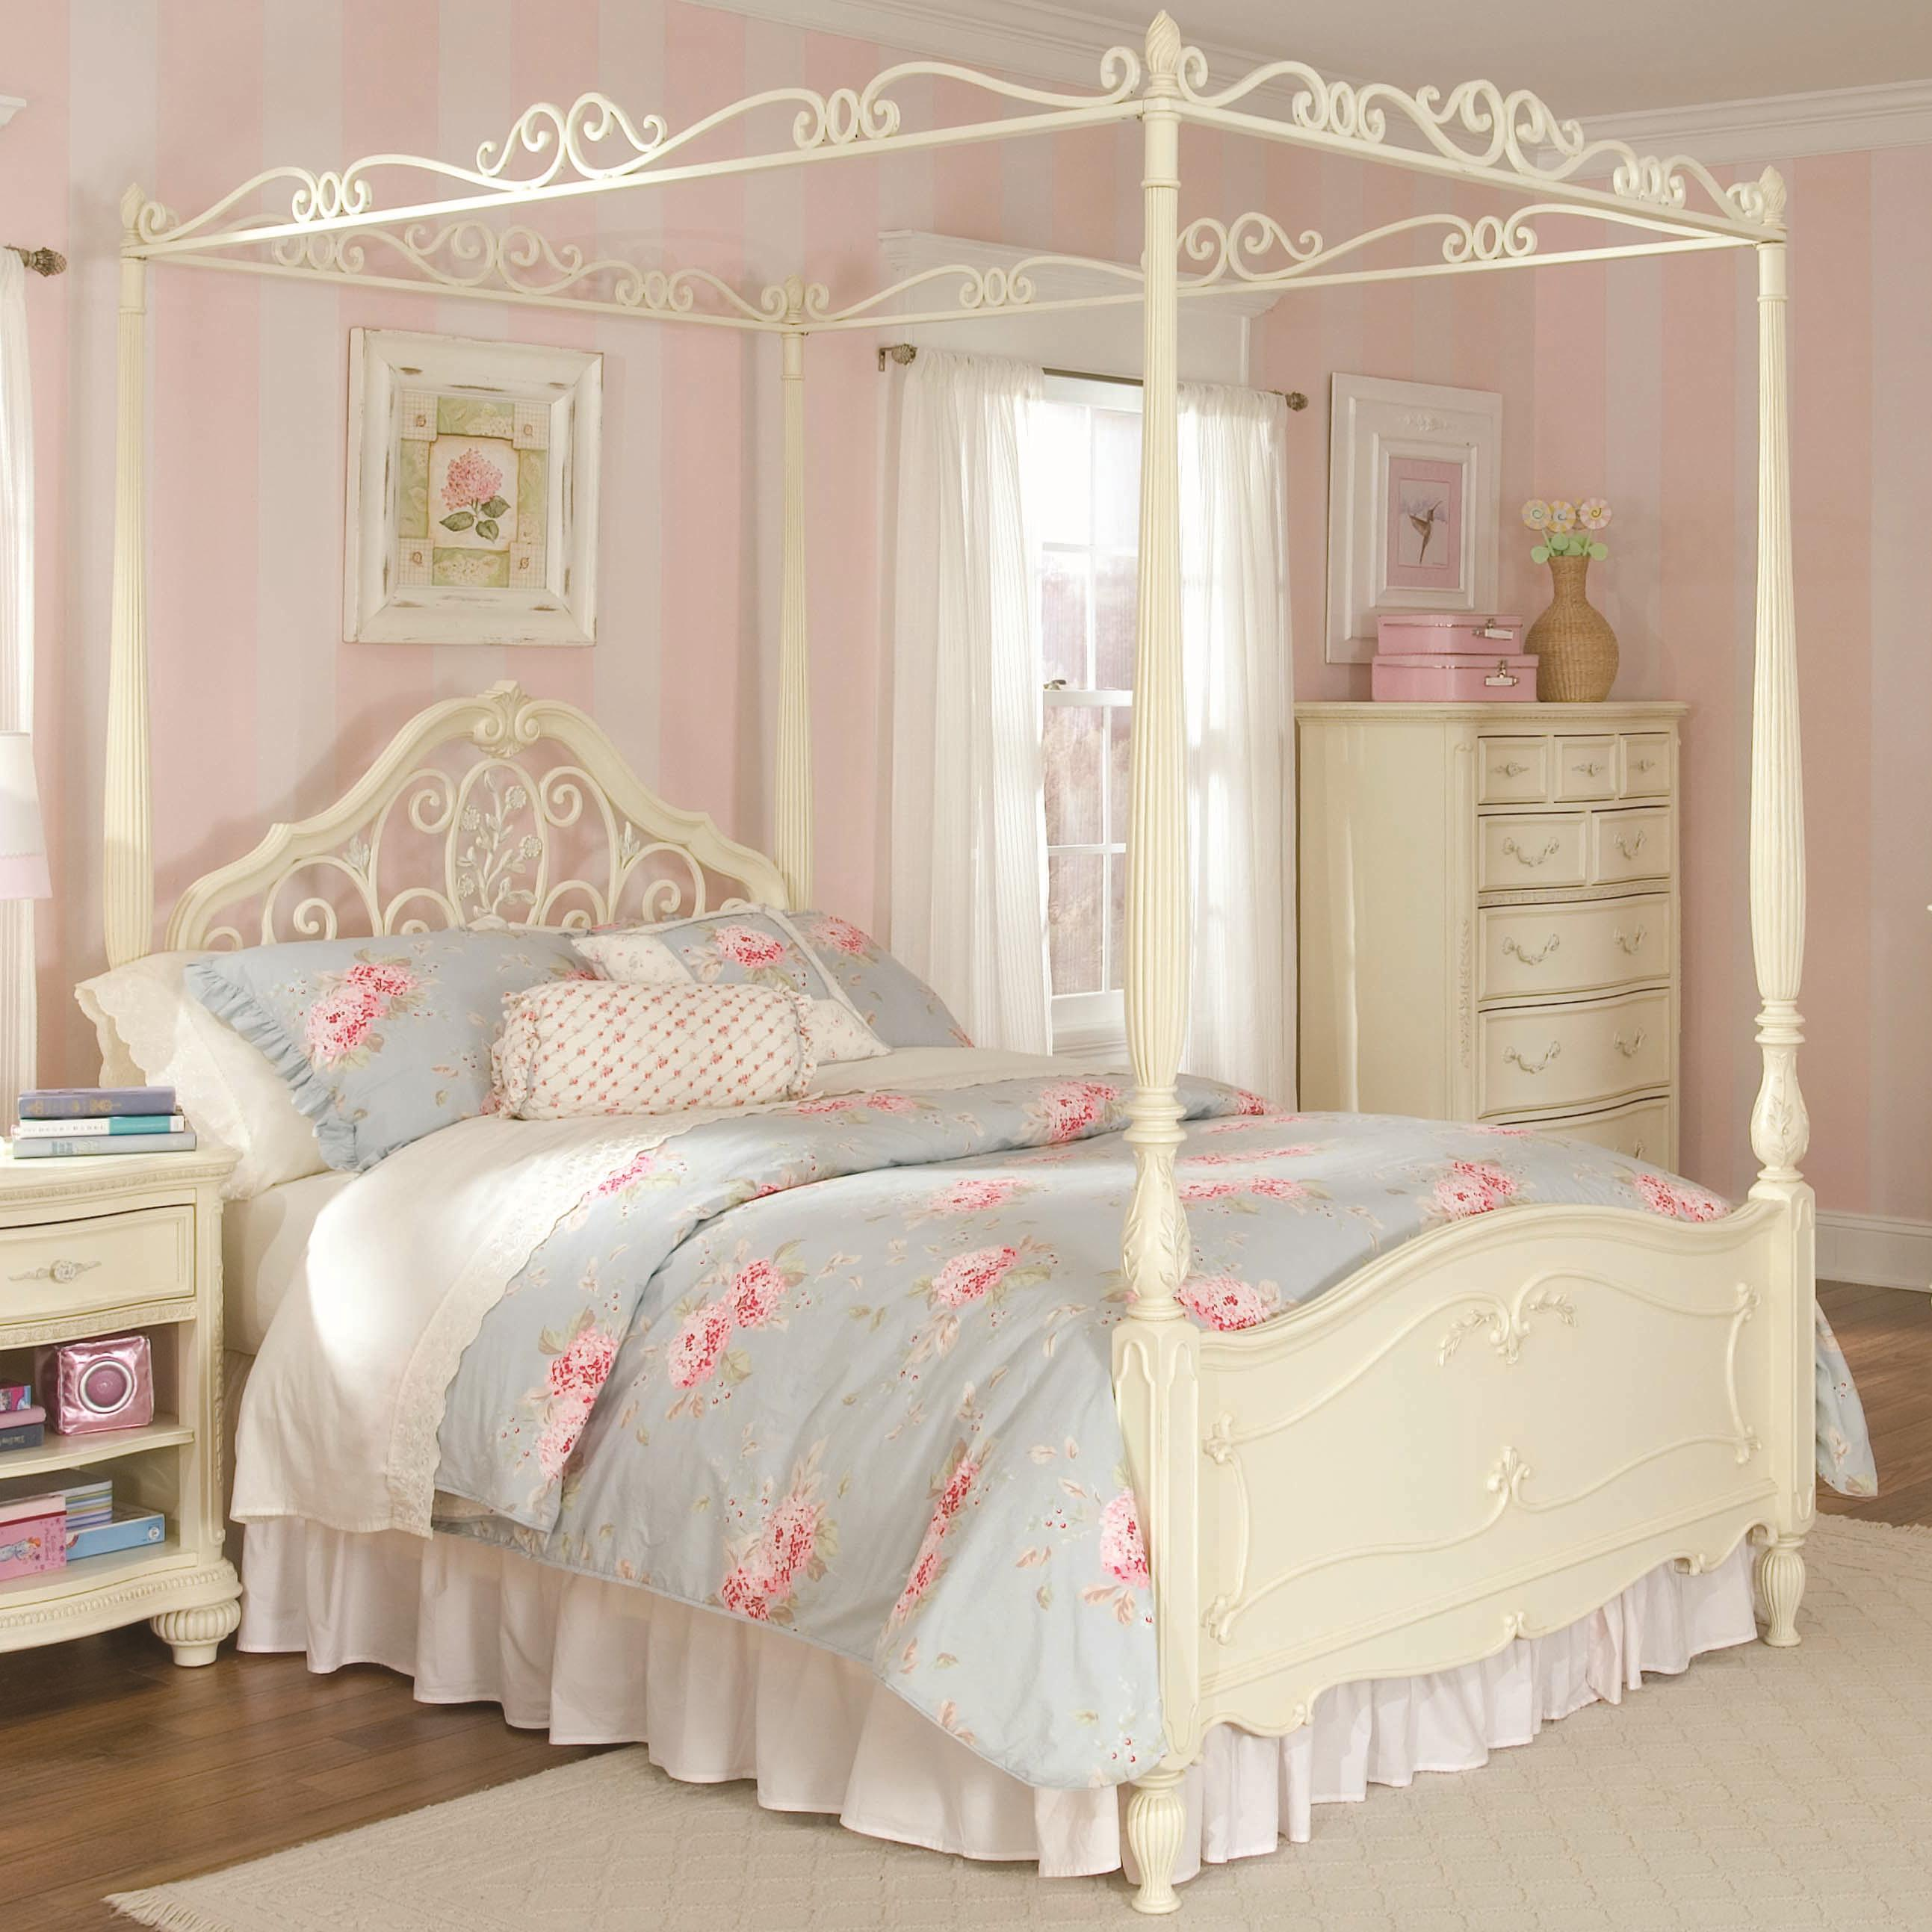 Lea Industries Jessica McClintock Romance Full-Size Metal u0026 Wood Canopy Bed with Scroll Detailing - AHFA - Canopy Bed Dealer Locator & Lea Industries Jessica McClintock Romance Full-Size Metal u0026 Wood ...